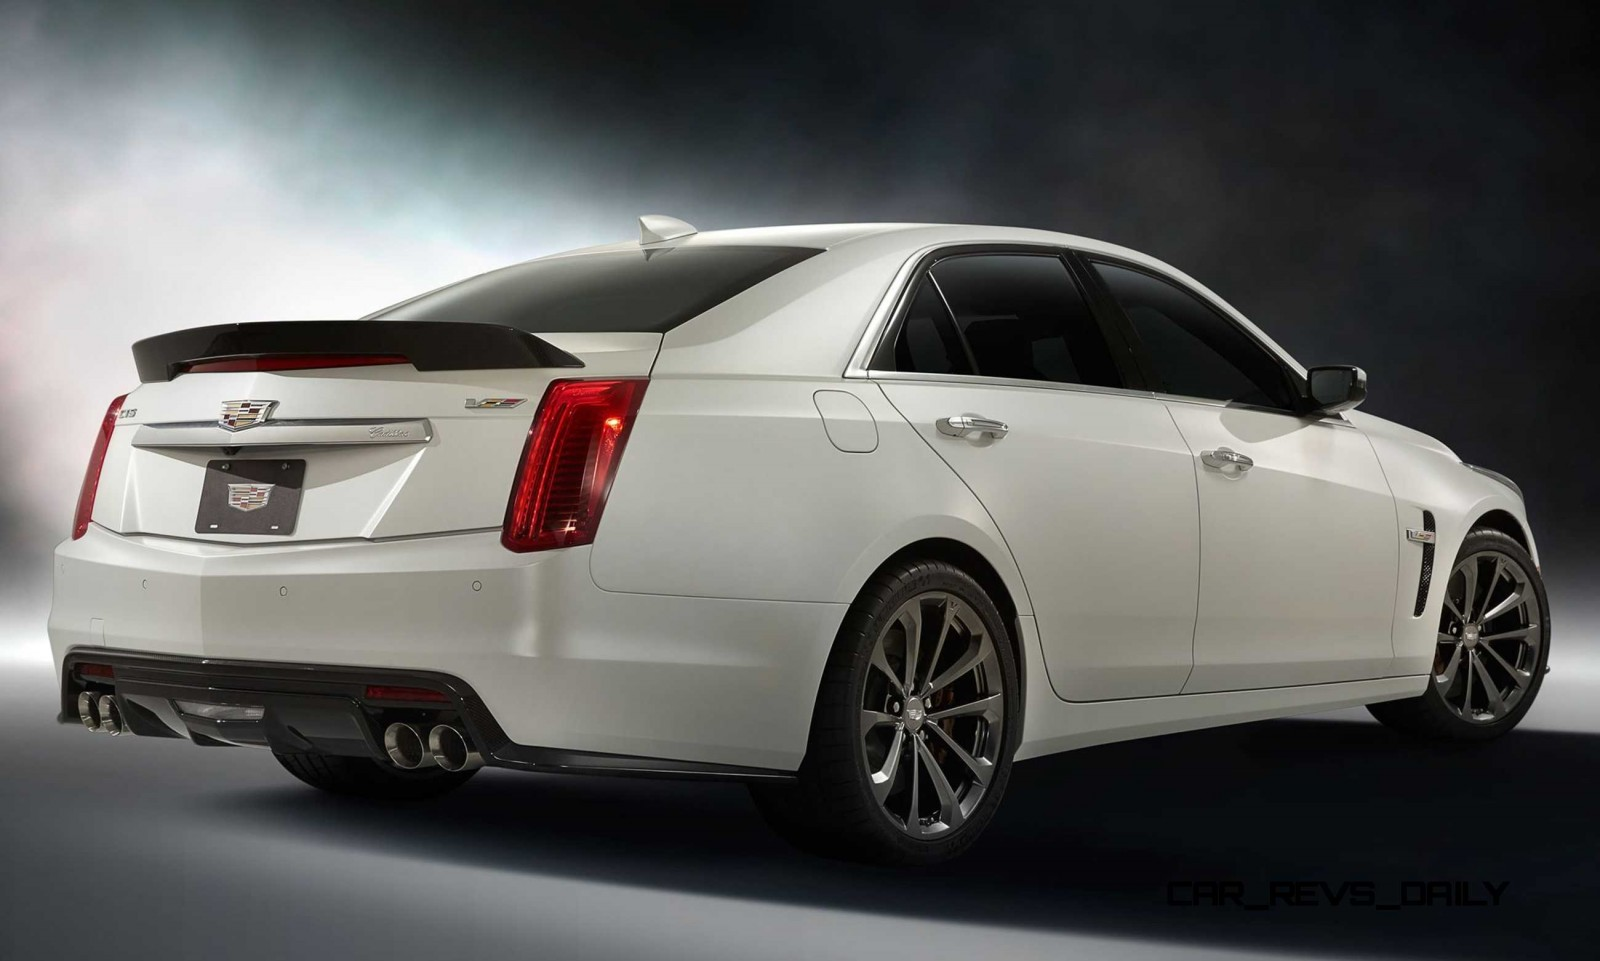 2016 cadillac cts v sedan. Black Bedroom Furniture Sets. Home Design Ideas